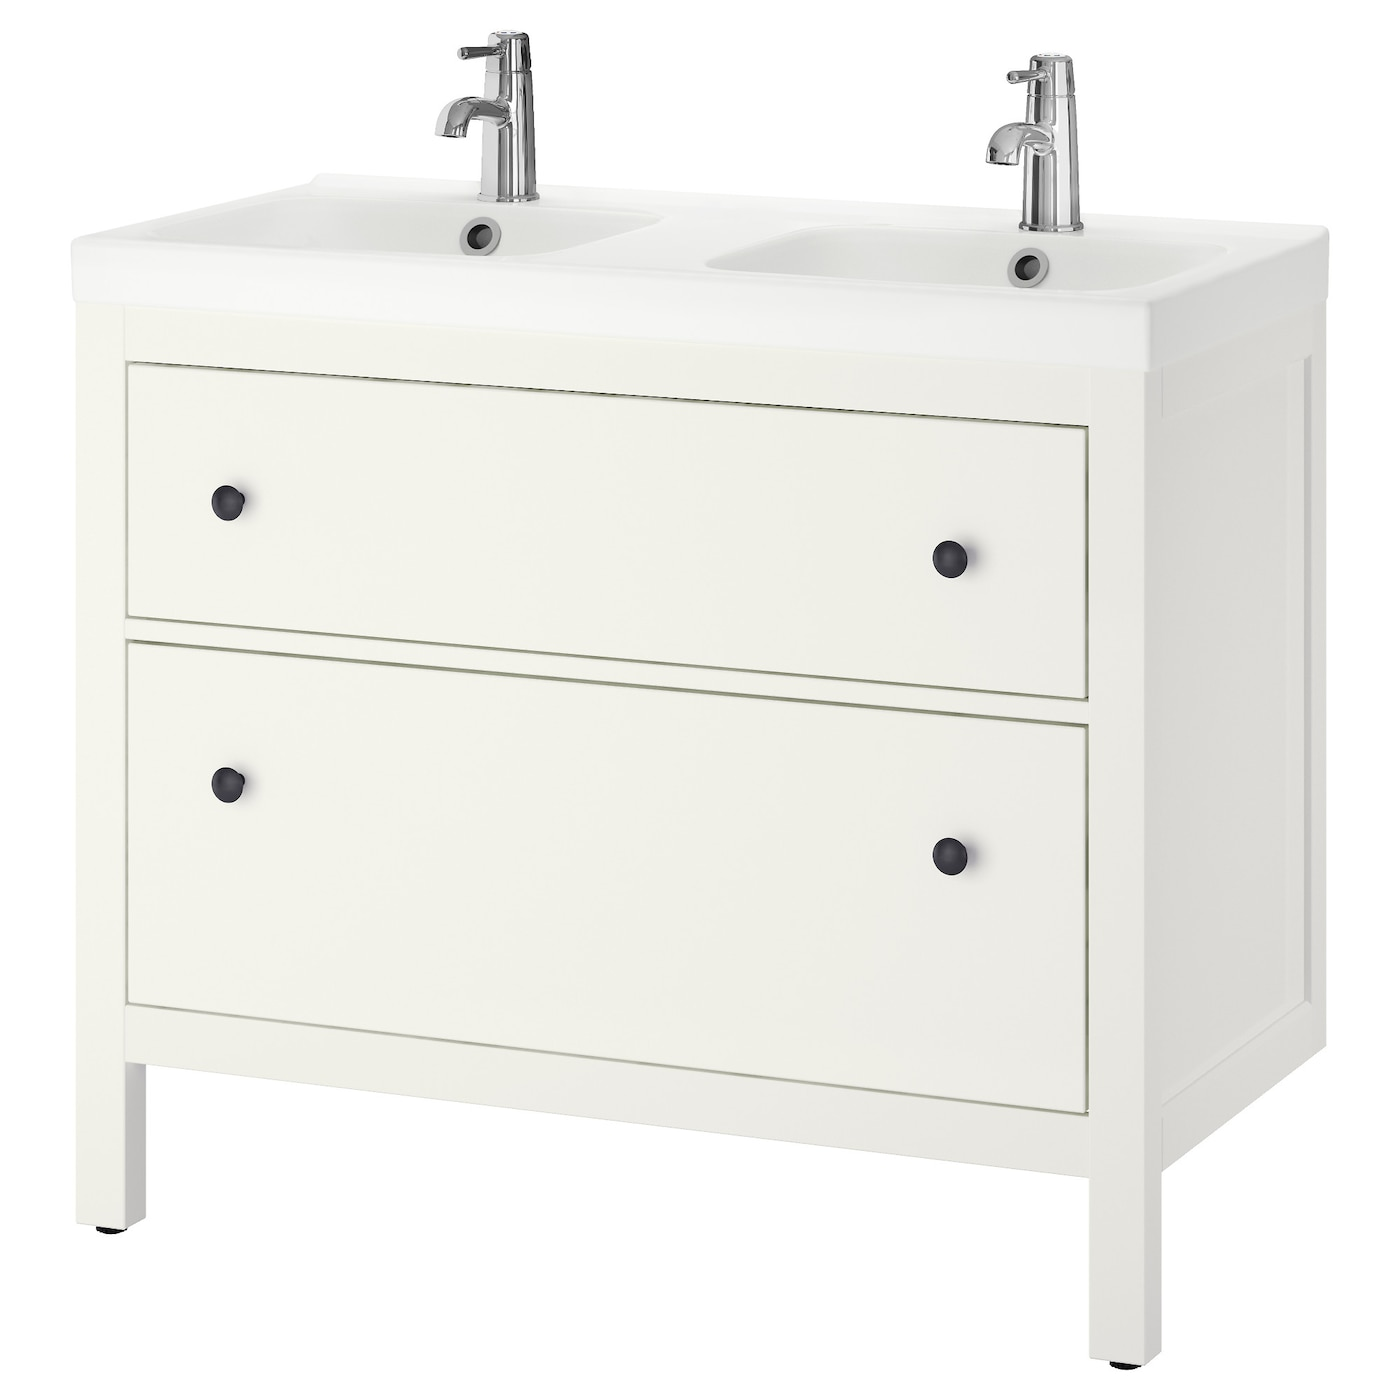 Vanity Units Sink Cabinets & Wash Stands